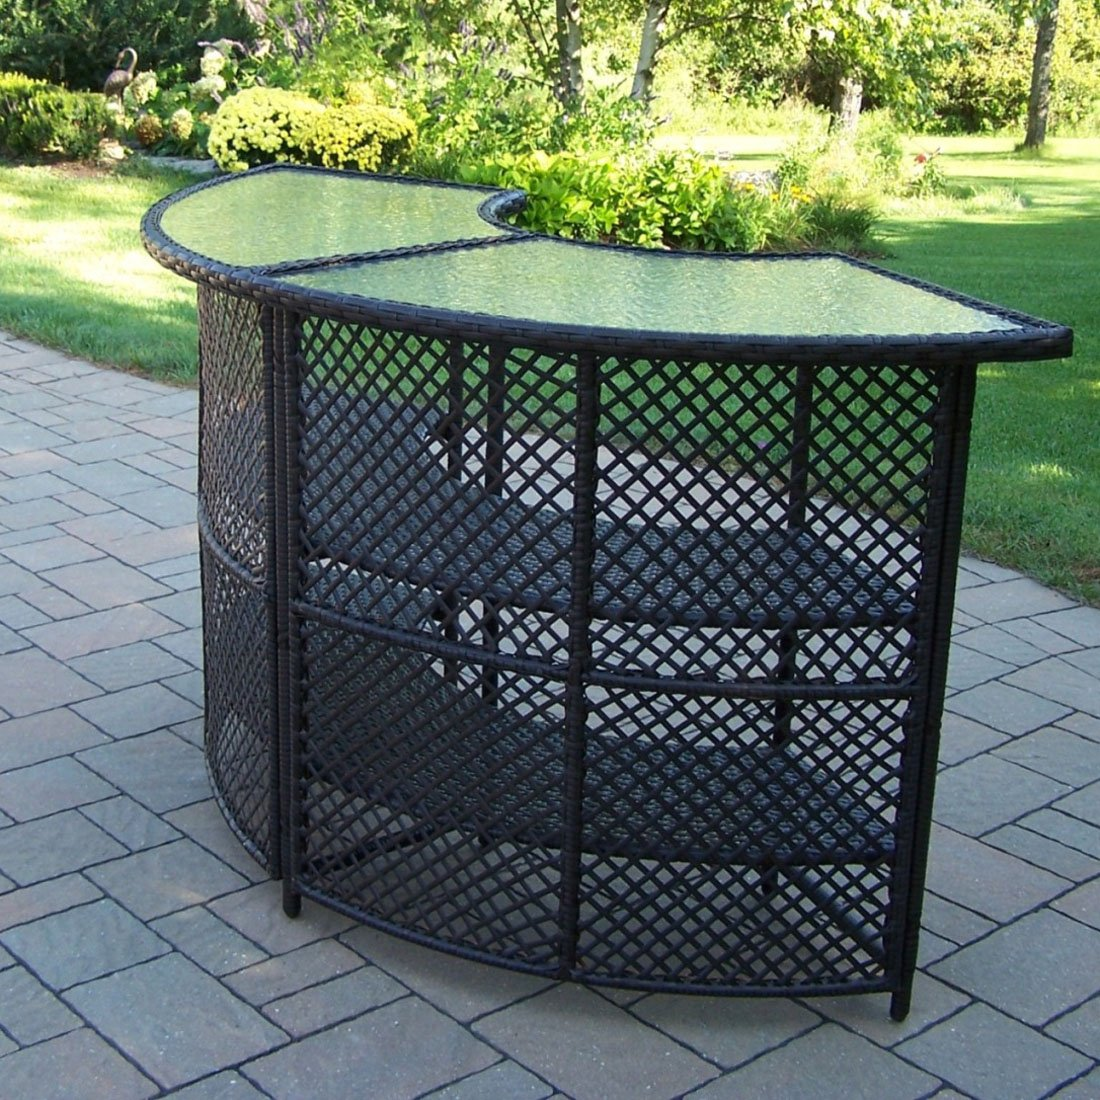 Resin outdoor bar sets - 20 ways to upgrade your home ...